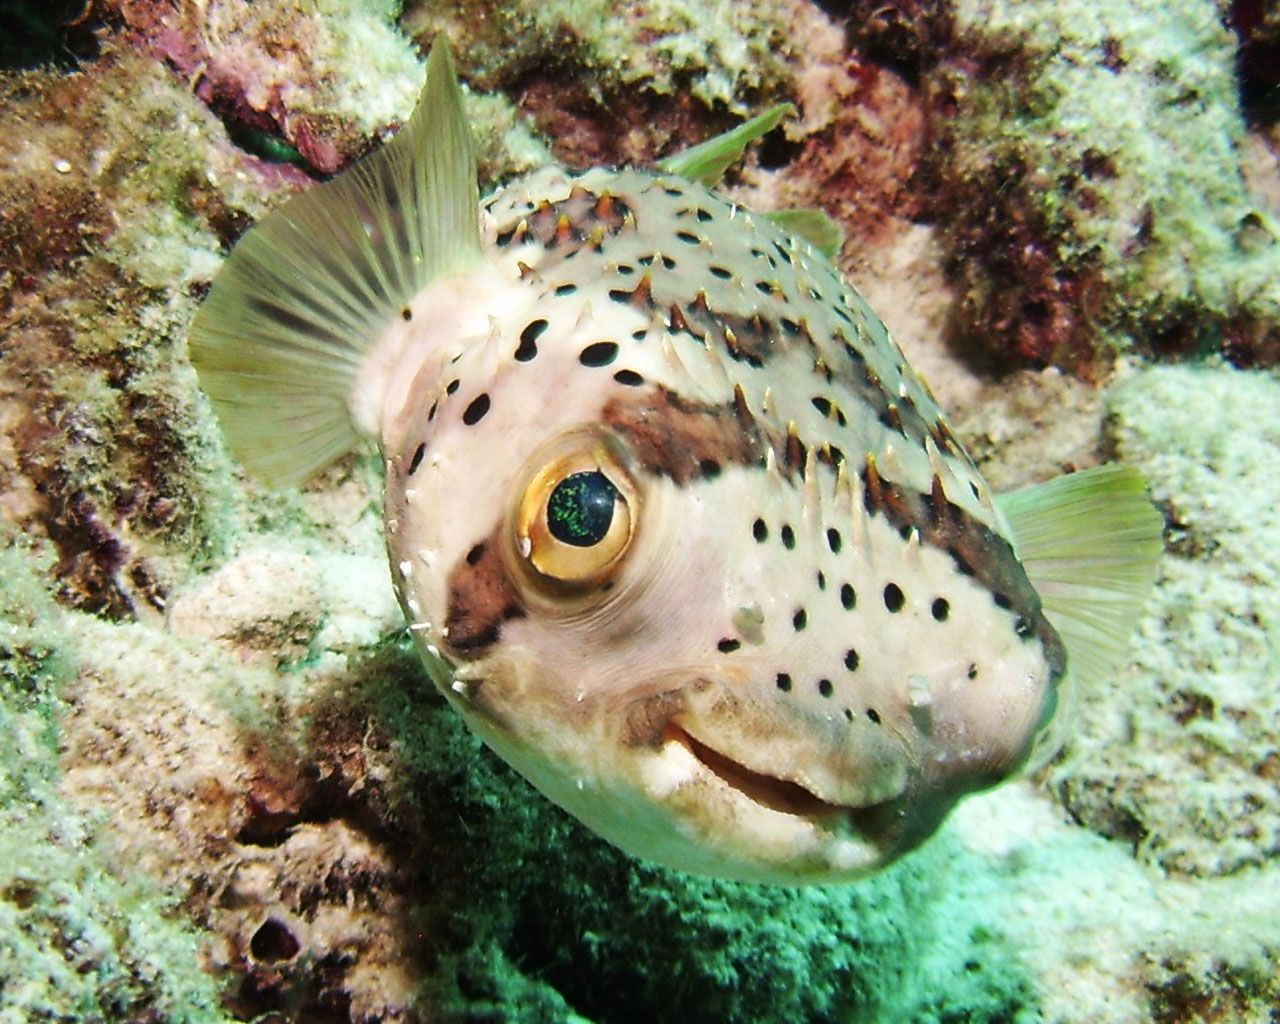 Puffer fish true wildlife creatures for Puffer fish images